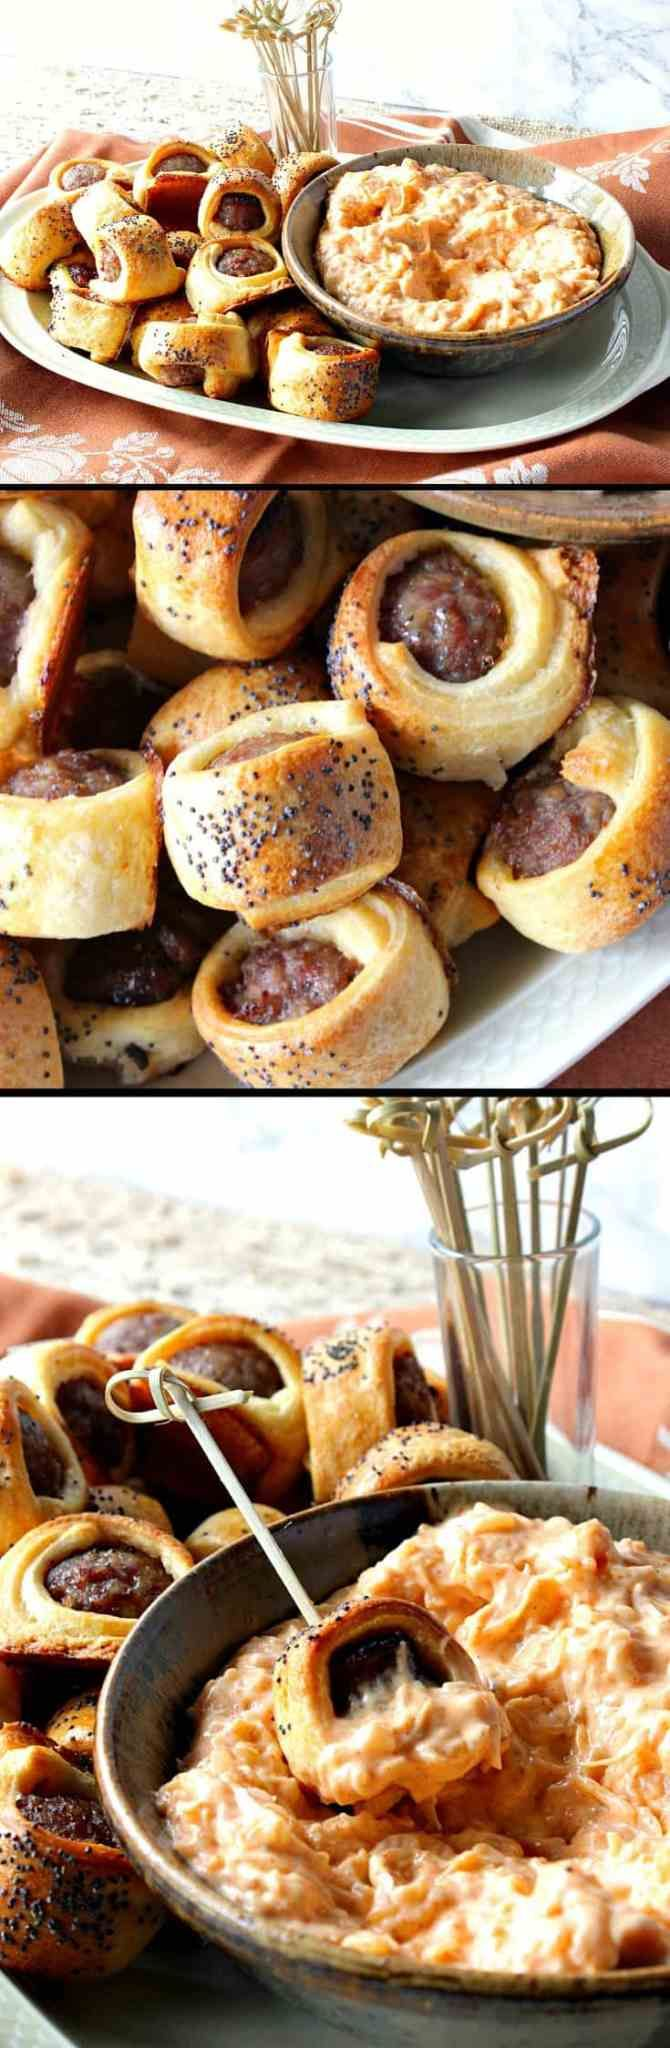 Easy Oktoberfest Crescent Wrapped Bratwurst Bites with Sauerkraut Dipping Sauce …